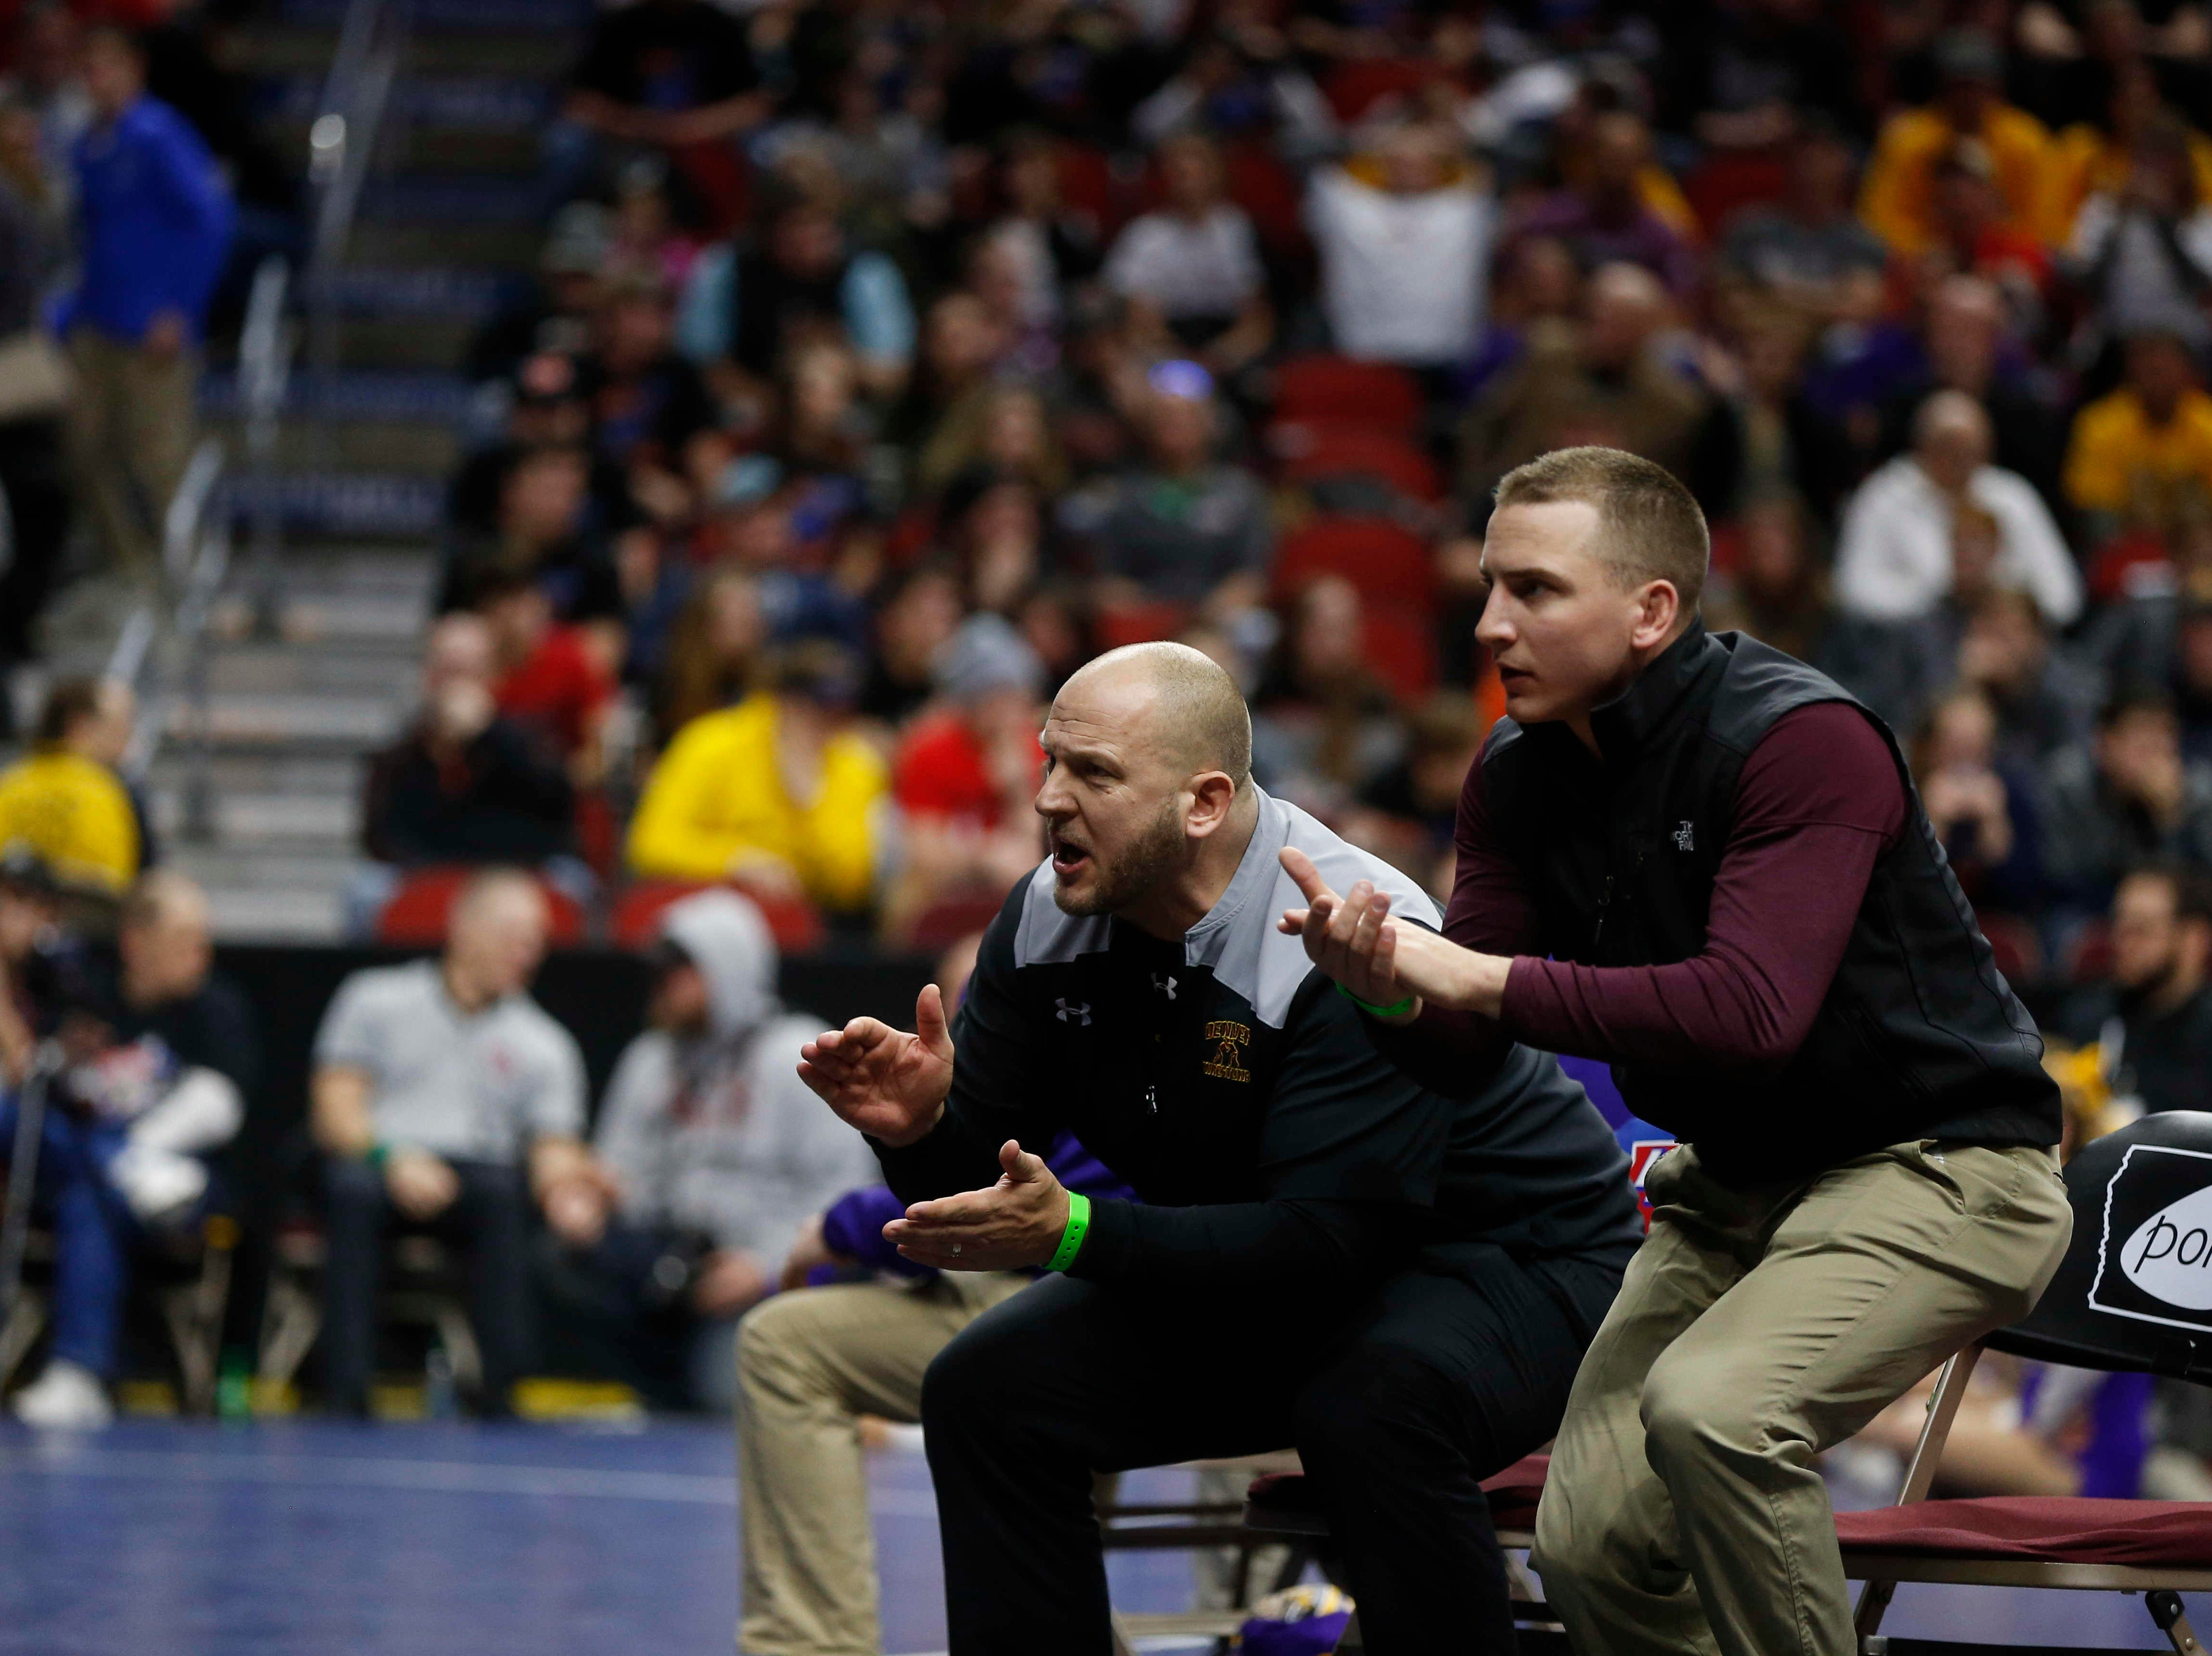 Denver coaches explode out of their seats as Cael Krueger wrestles Western Christian sophomore Tristan Mulder at 170 pounds during the opening round of Class 1A matches during the Iowa high school state wrestling tournament at Wells Fargo Arena on Thursday, Feb. 14, 2019, in Des Moines.